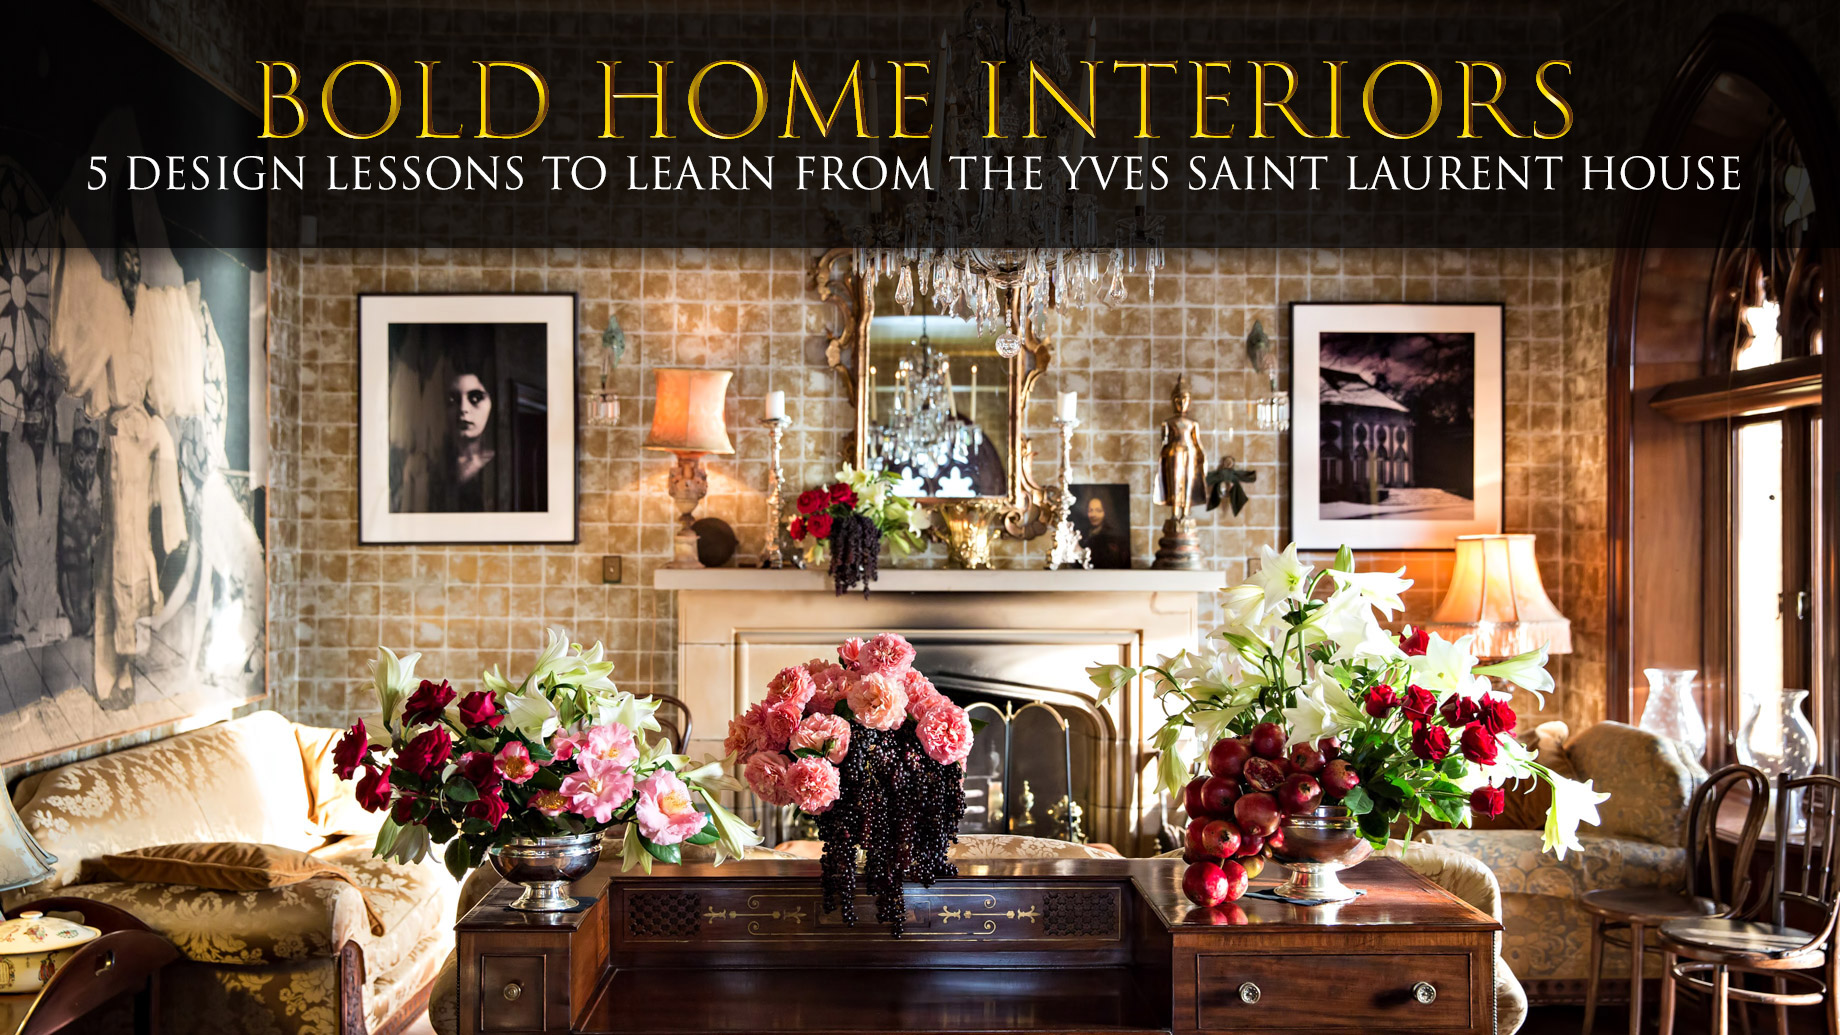 Bold Home Interiors - 5 Design Lessons to Learn from the Yves Saint Laurent House